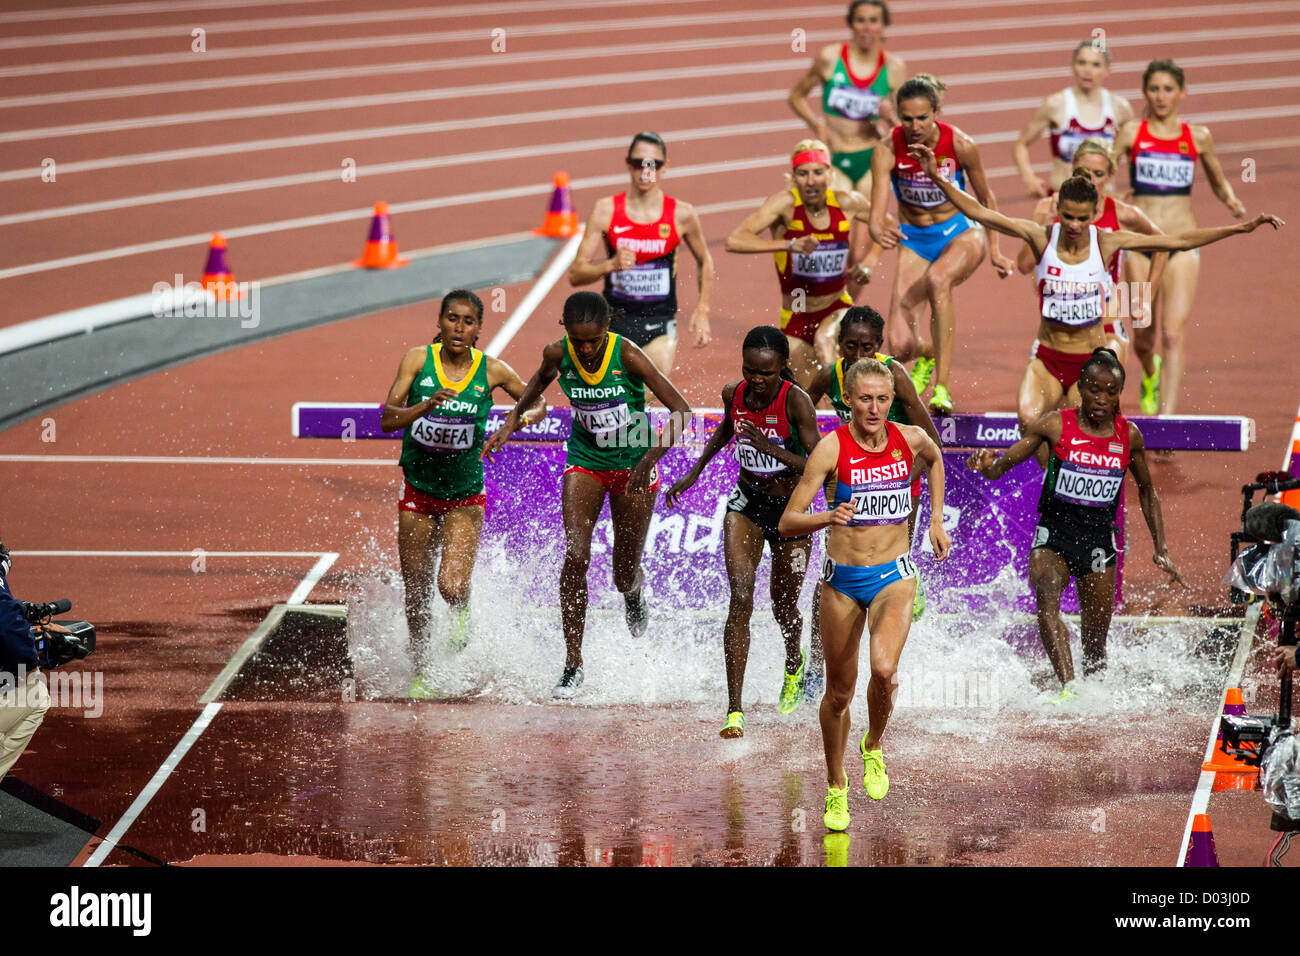 Steeple chase for Steeplechase